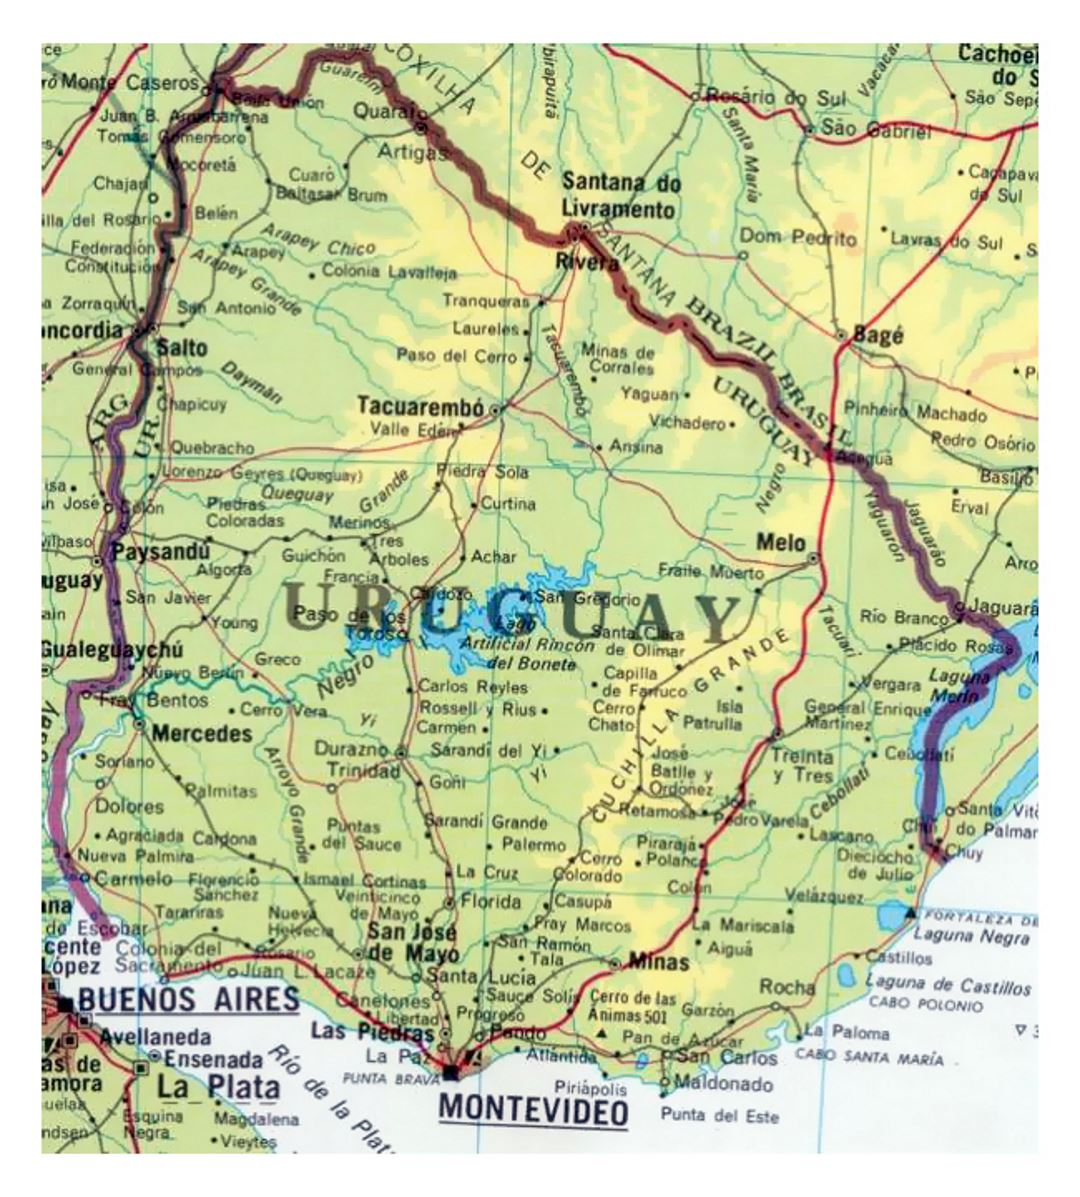 Detailed map of Uruguay with roads and cities